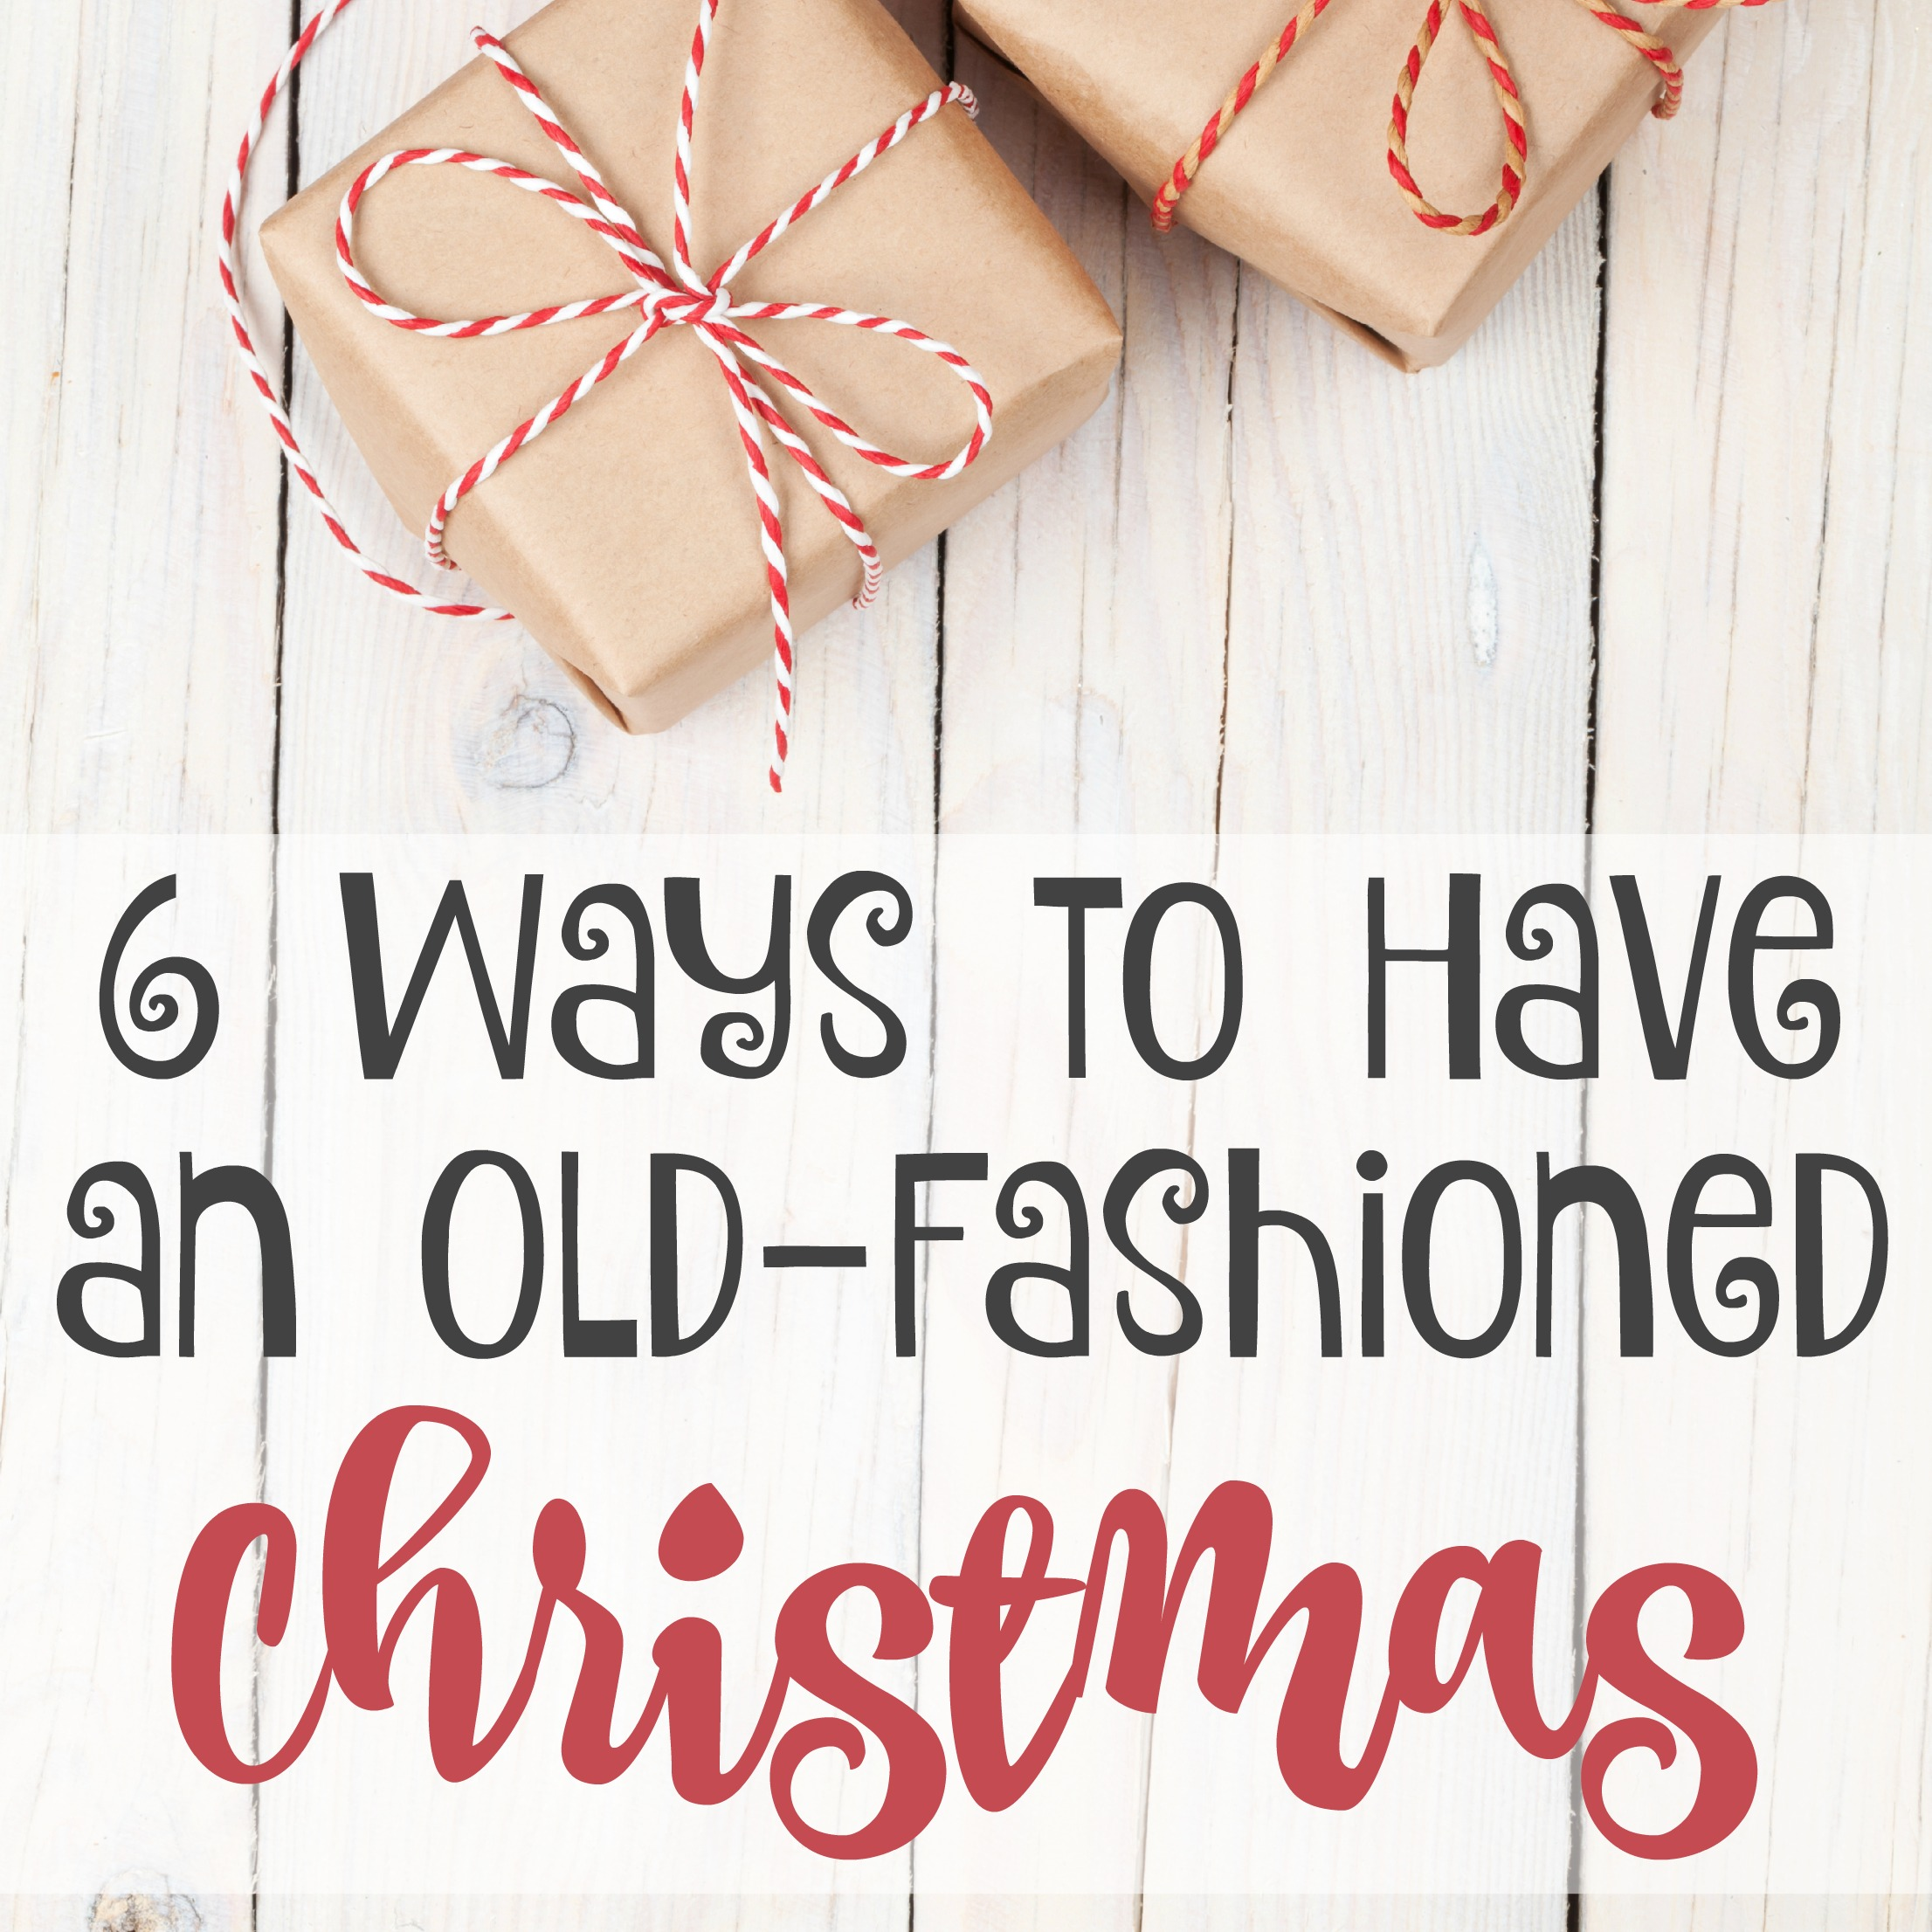 Old Fashioned Christmas Recipes Traditions